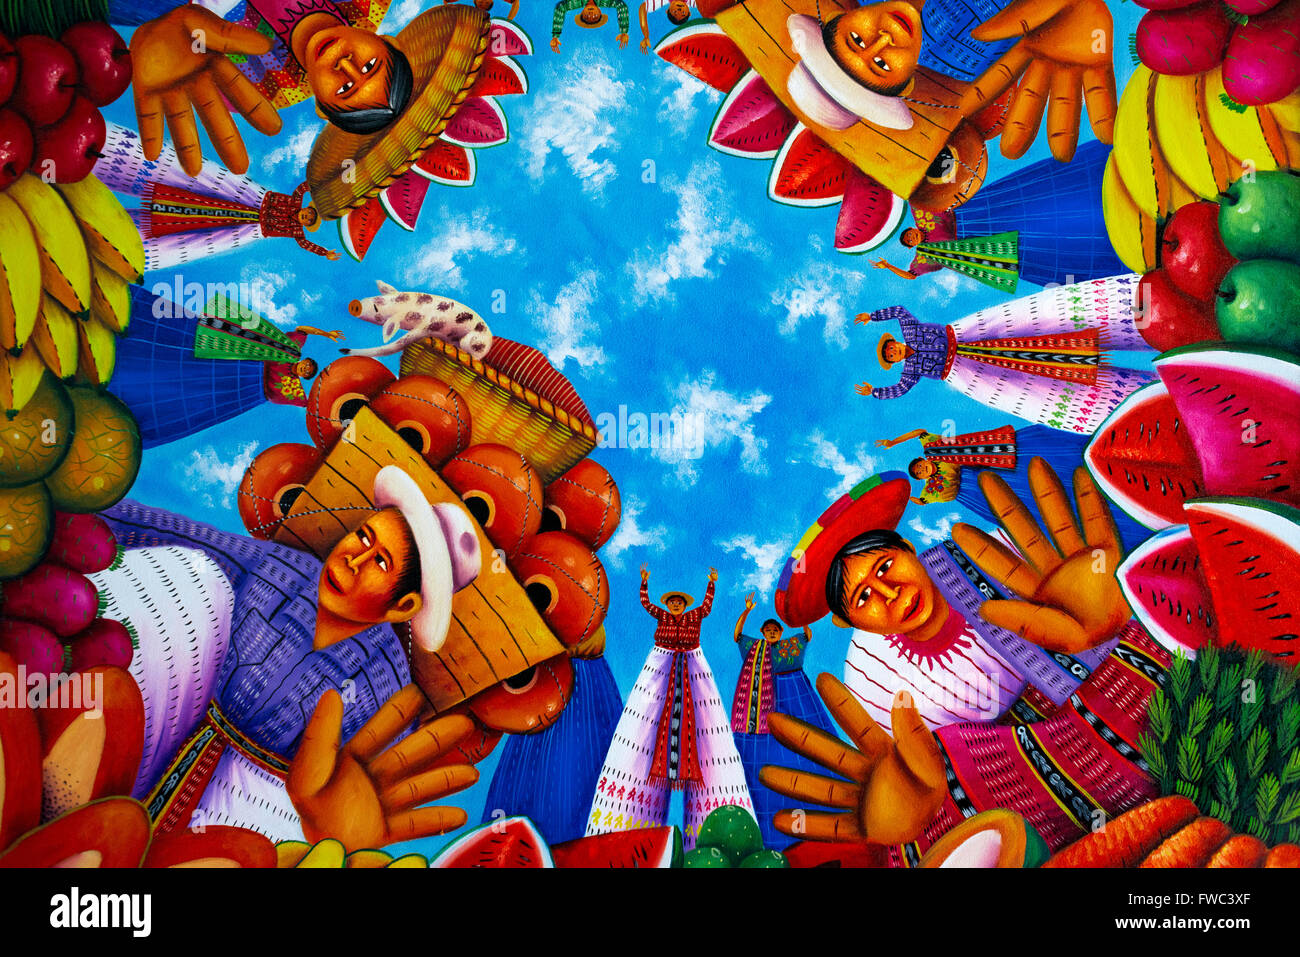 'Birds Eye' by Antonio Coché. Art Gallery 'Chiya' in San Juan La Laguna, Sololá, Guatemala. - Stock Image